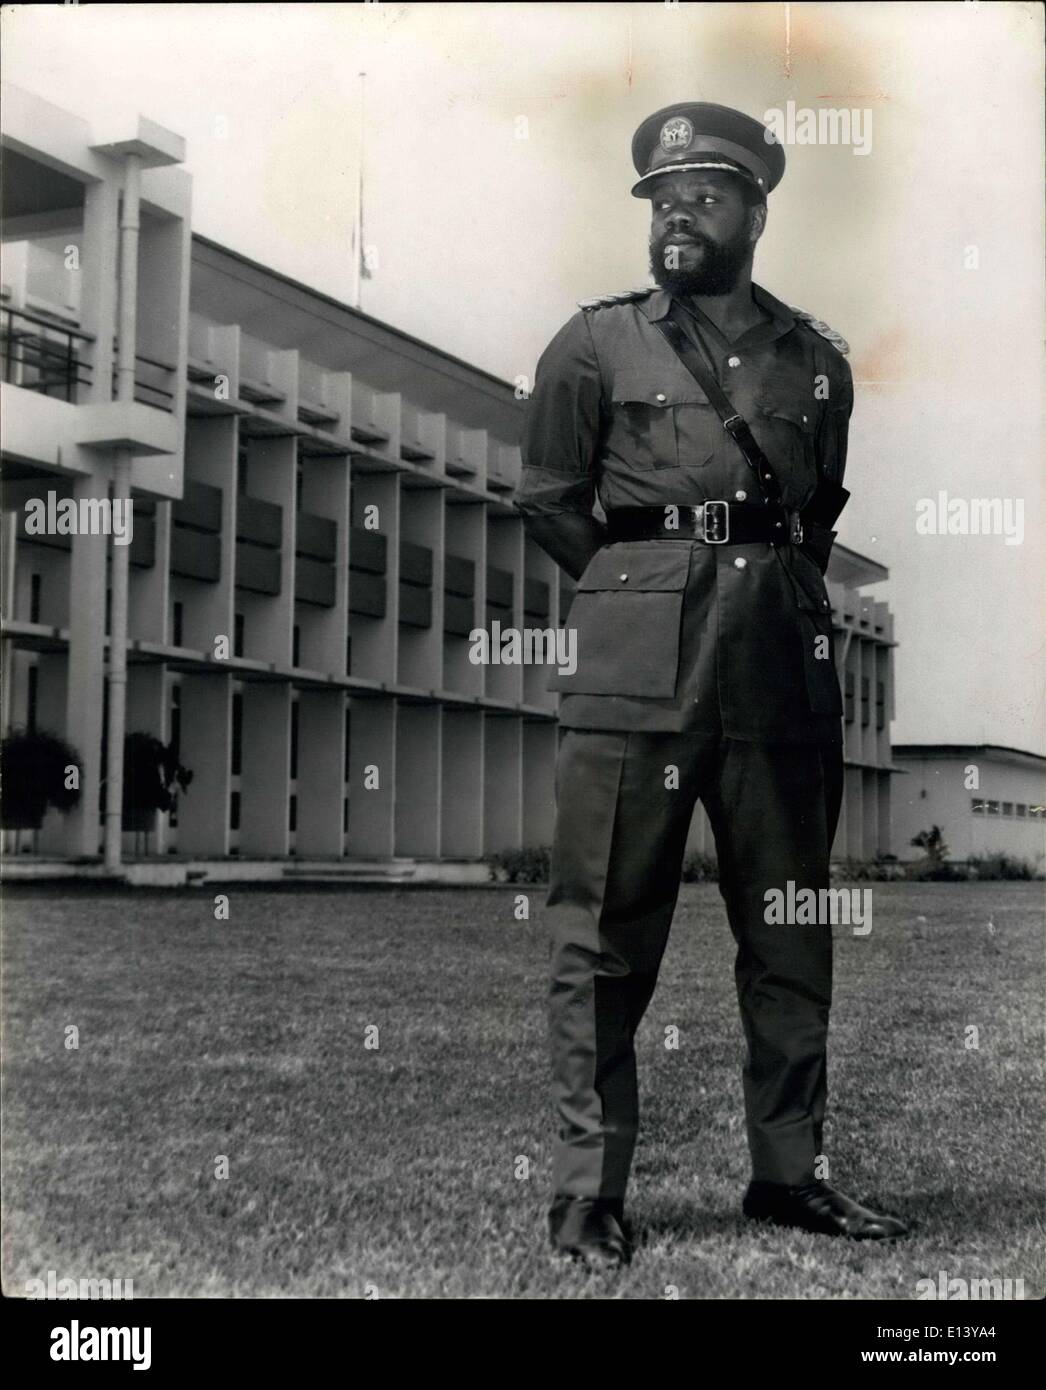 Mar. 31, 2012 - Eastern Nigiria's Military Governor - A Portrait: Liftnant - Colonel Odumfgmu Ojuku born 1933 received his ea - Stock Image